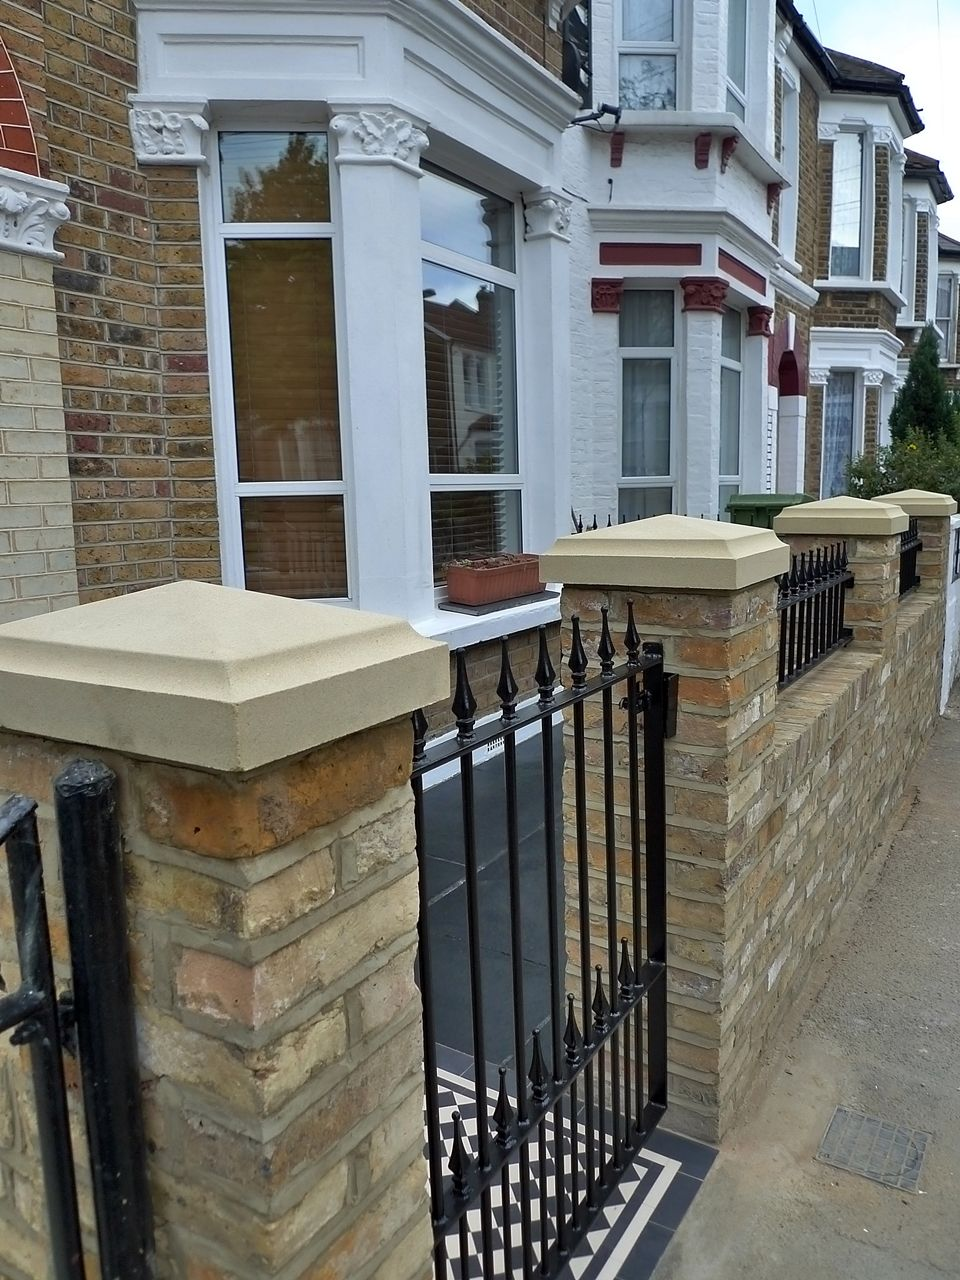 Victorian Front Garden Design London Stock Second Hand Reclaimed Brick Wall  And Natural Stone Cap Wall